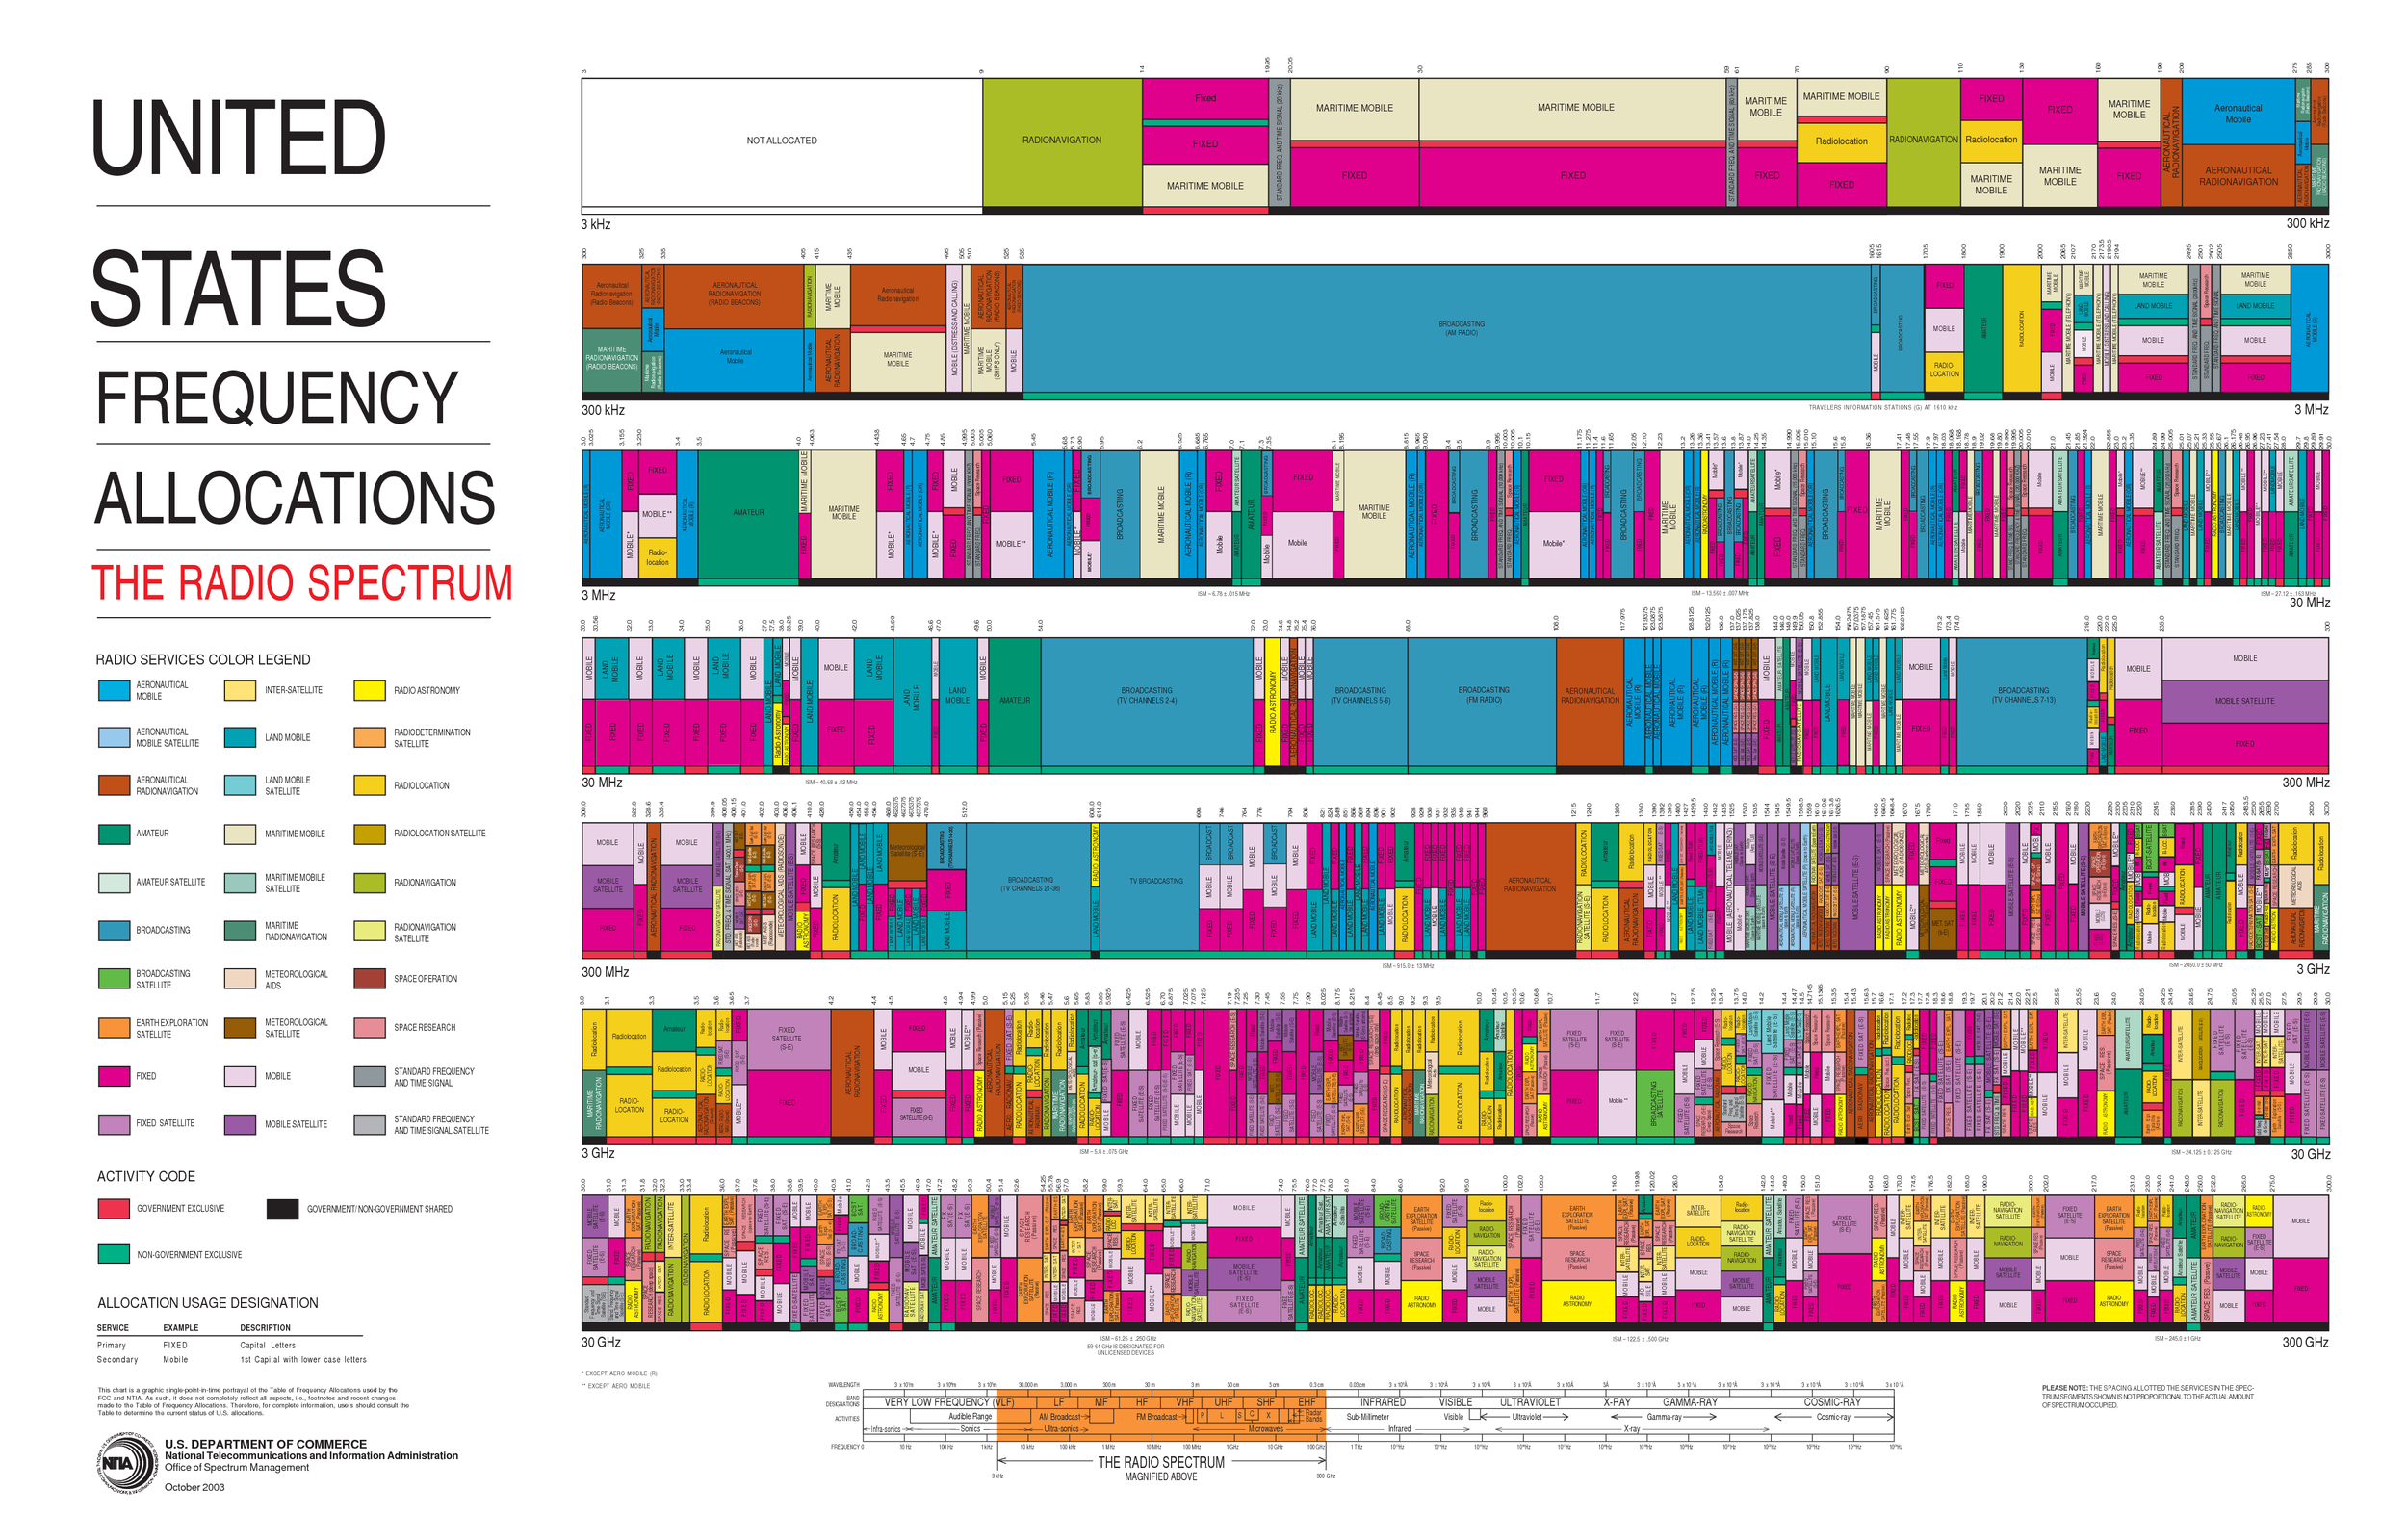 Chart of all radio frequency allocations in the United States.